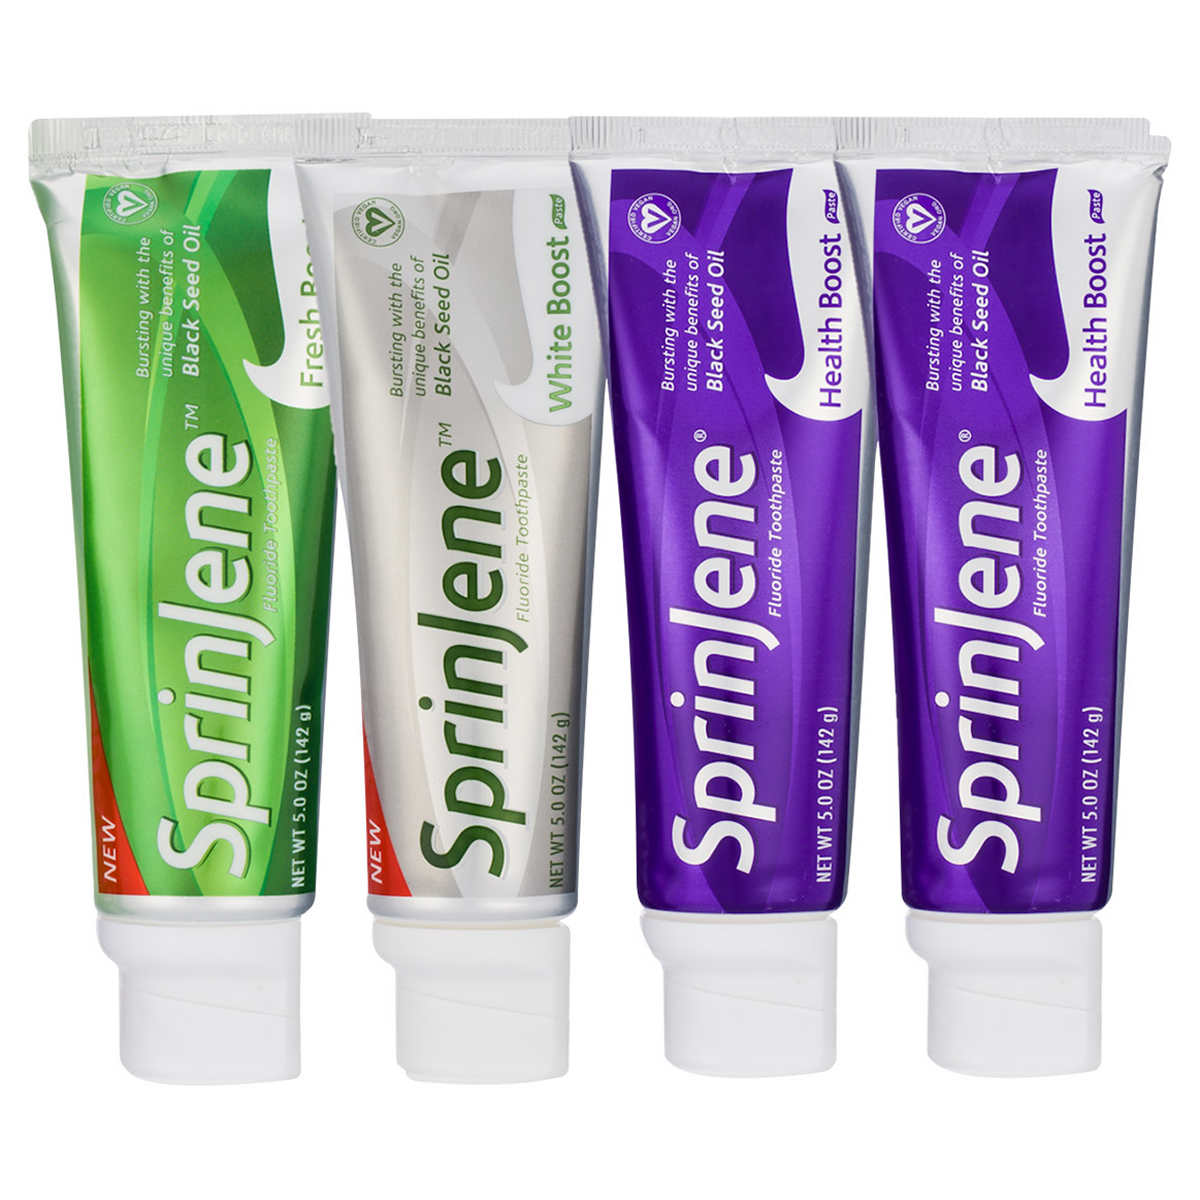 Sprinjene Natural Adult Toothpaste Combo 4 Pack